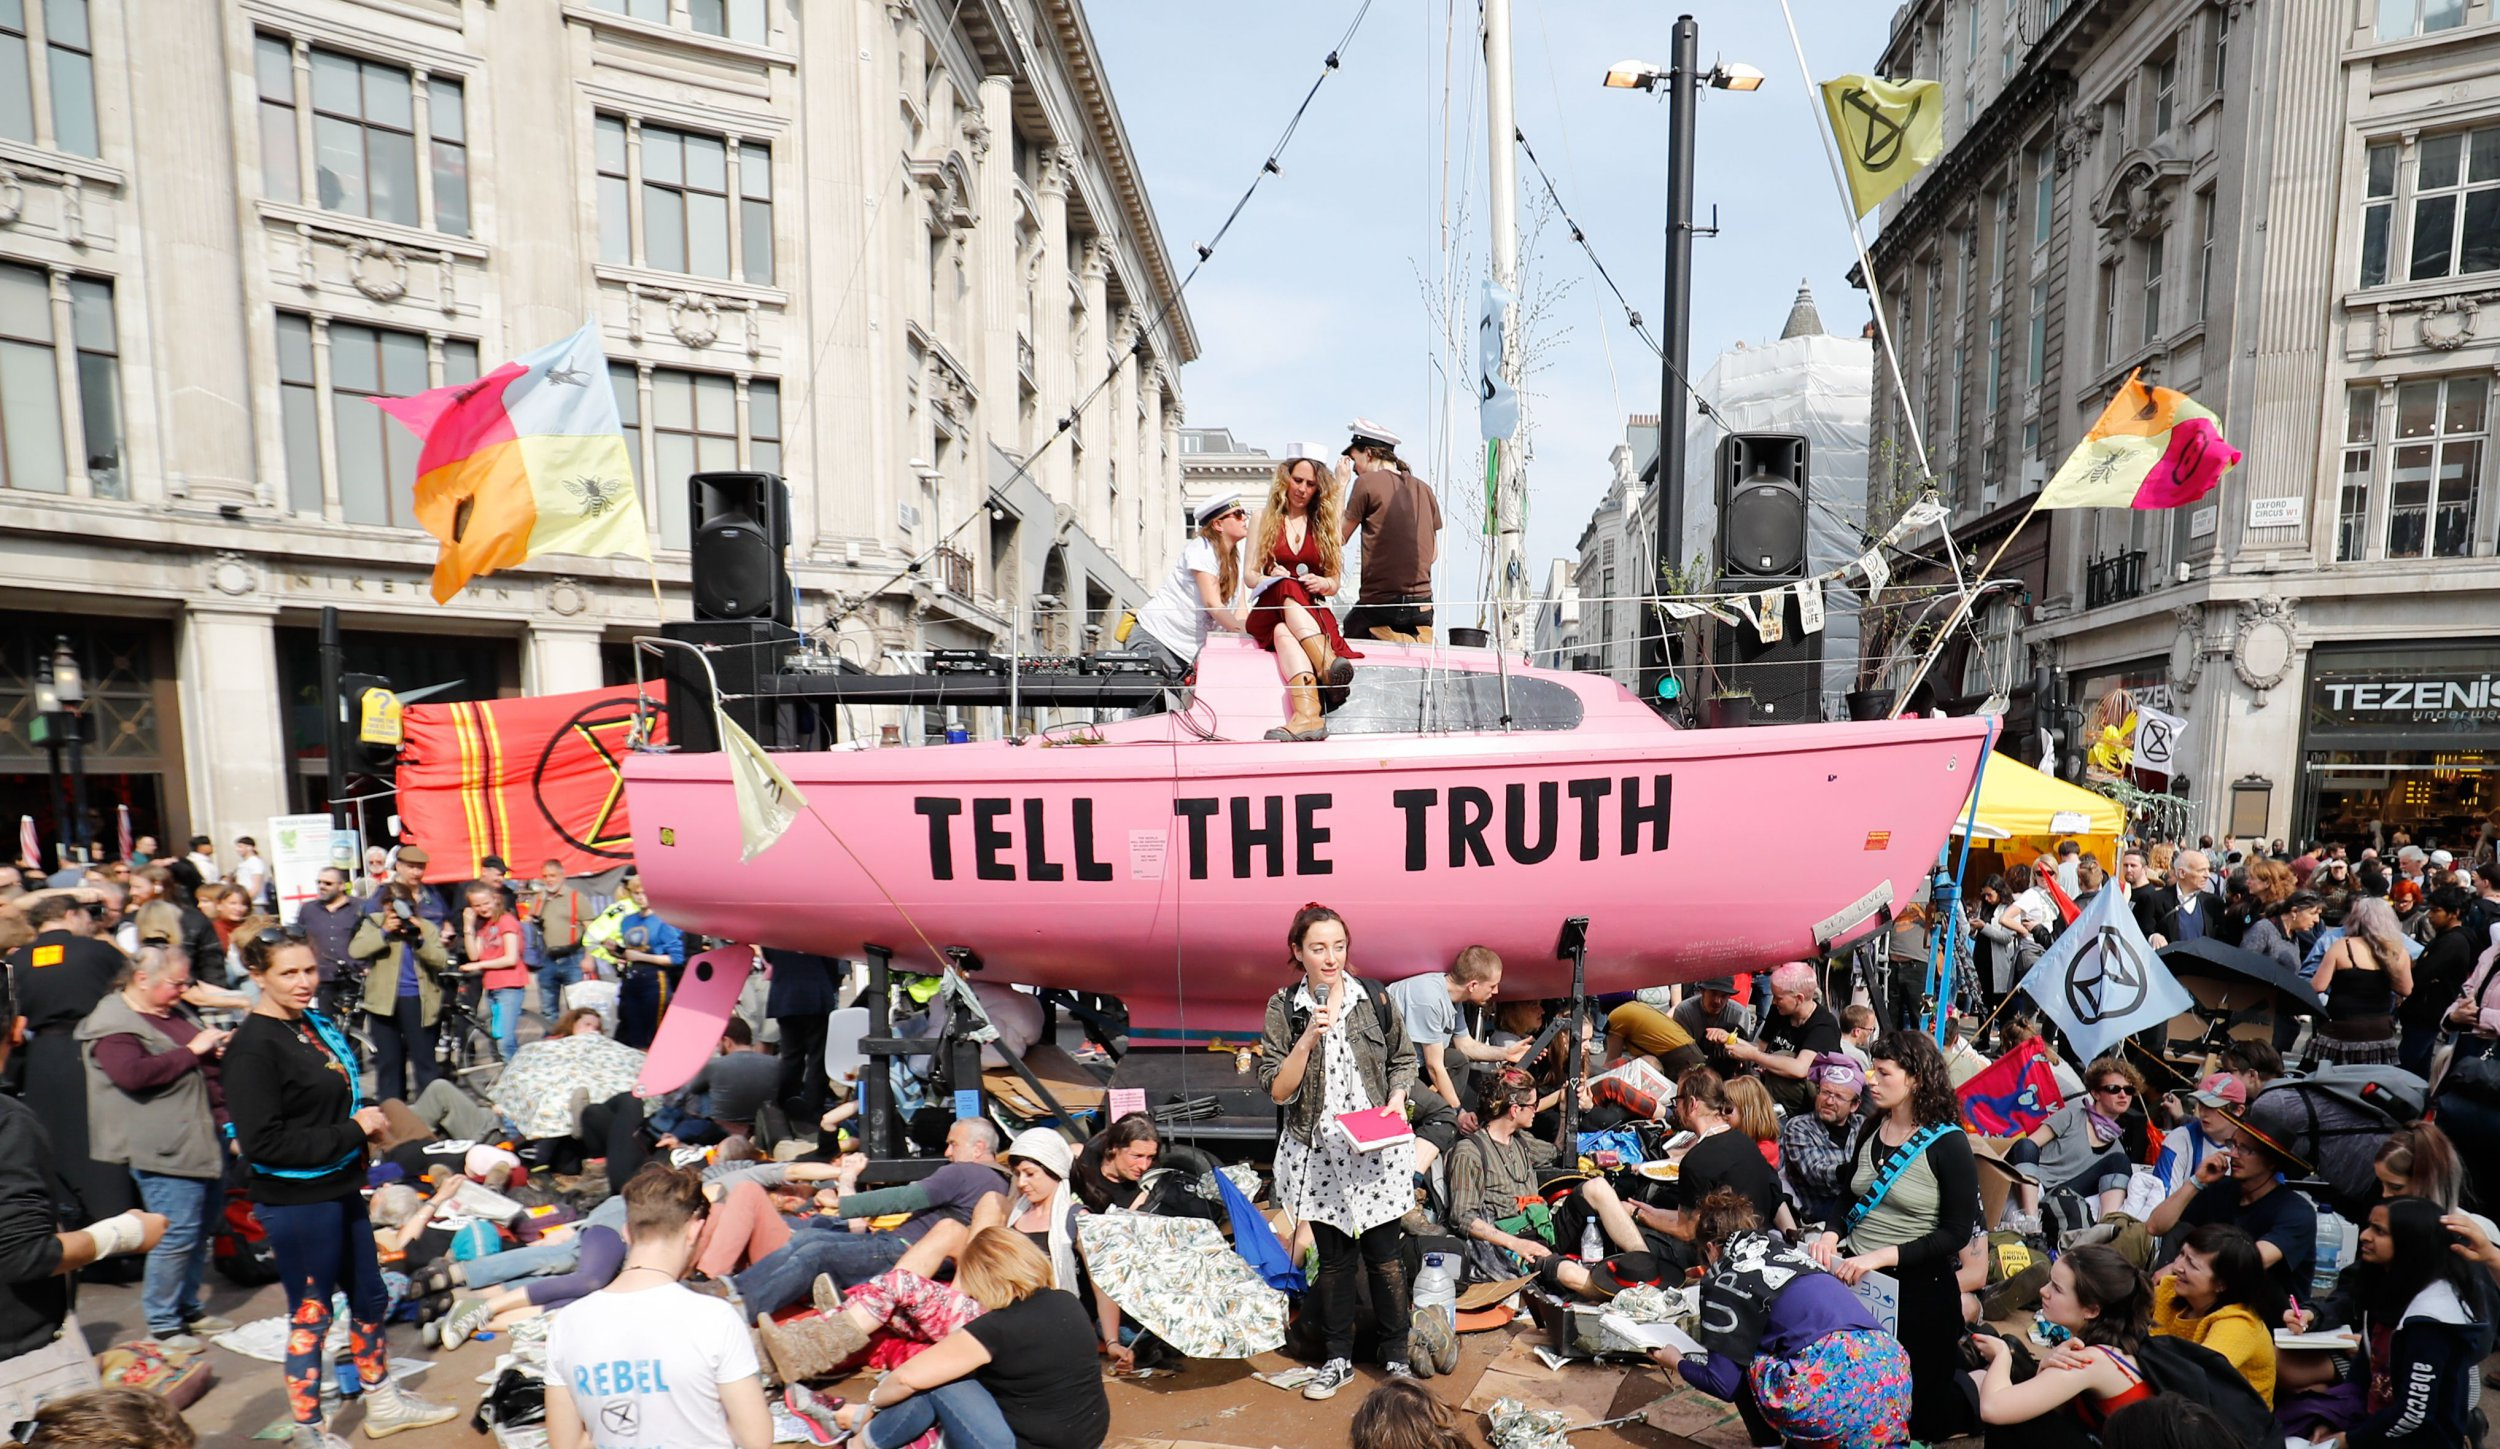 "TOPSHOT - Climate change activists listen to speeches at their encampment blocking the road junction at Oxford Circus in the busy shopping district in central London on April 18, 2019 during the fourth day of an environmental protest by the Extinction Rebellion group. - London commuters faced further disruption on Thursday as climate change protests continued to bring parts of the British capital to a standstill, leading to over 300 arrests. Demonstrators began blocking off a bridge and major central road junctions on April 15 at the start of a civil disobedience campaign calling for governments to declare an ecological emergency over climate change, to reduce greenhouse gas emissions to zero by 2025, halt biodiversity loss and be led by new ""citizens' assemblies on climate and ecological justice"". (Photo by Tolga AKMEN / AFP)TOLGA AKMEN/AFP/Getty Images"